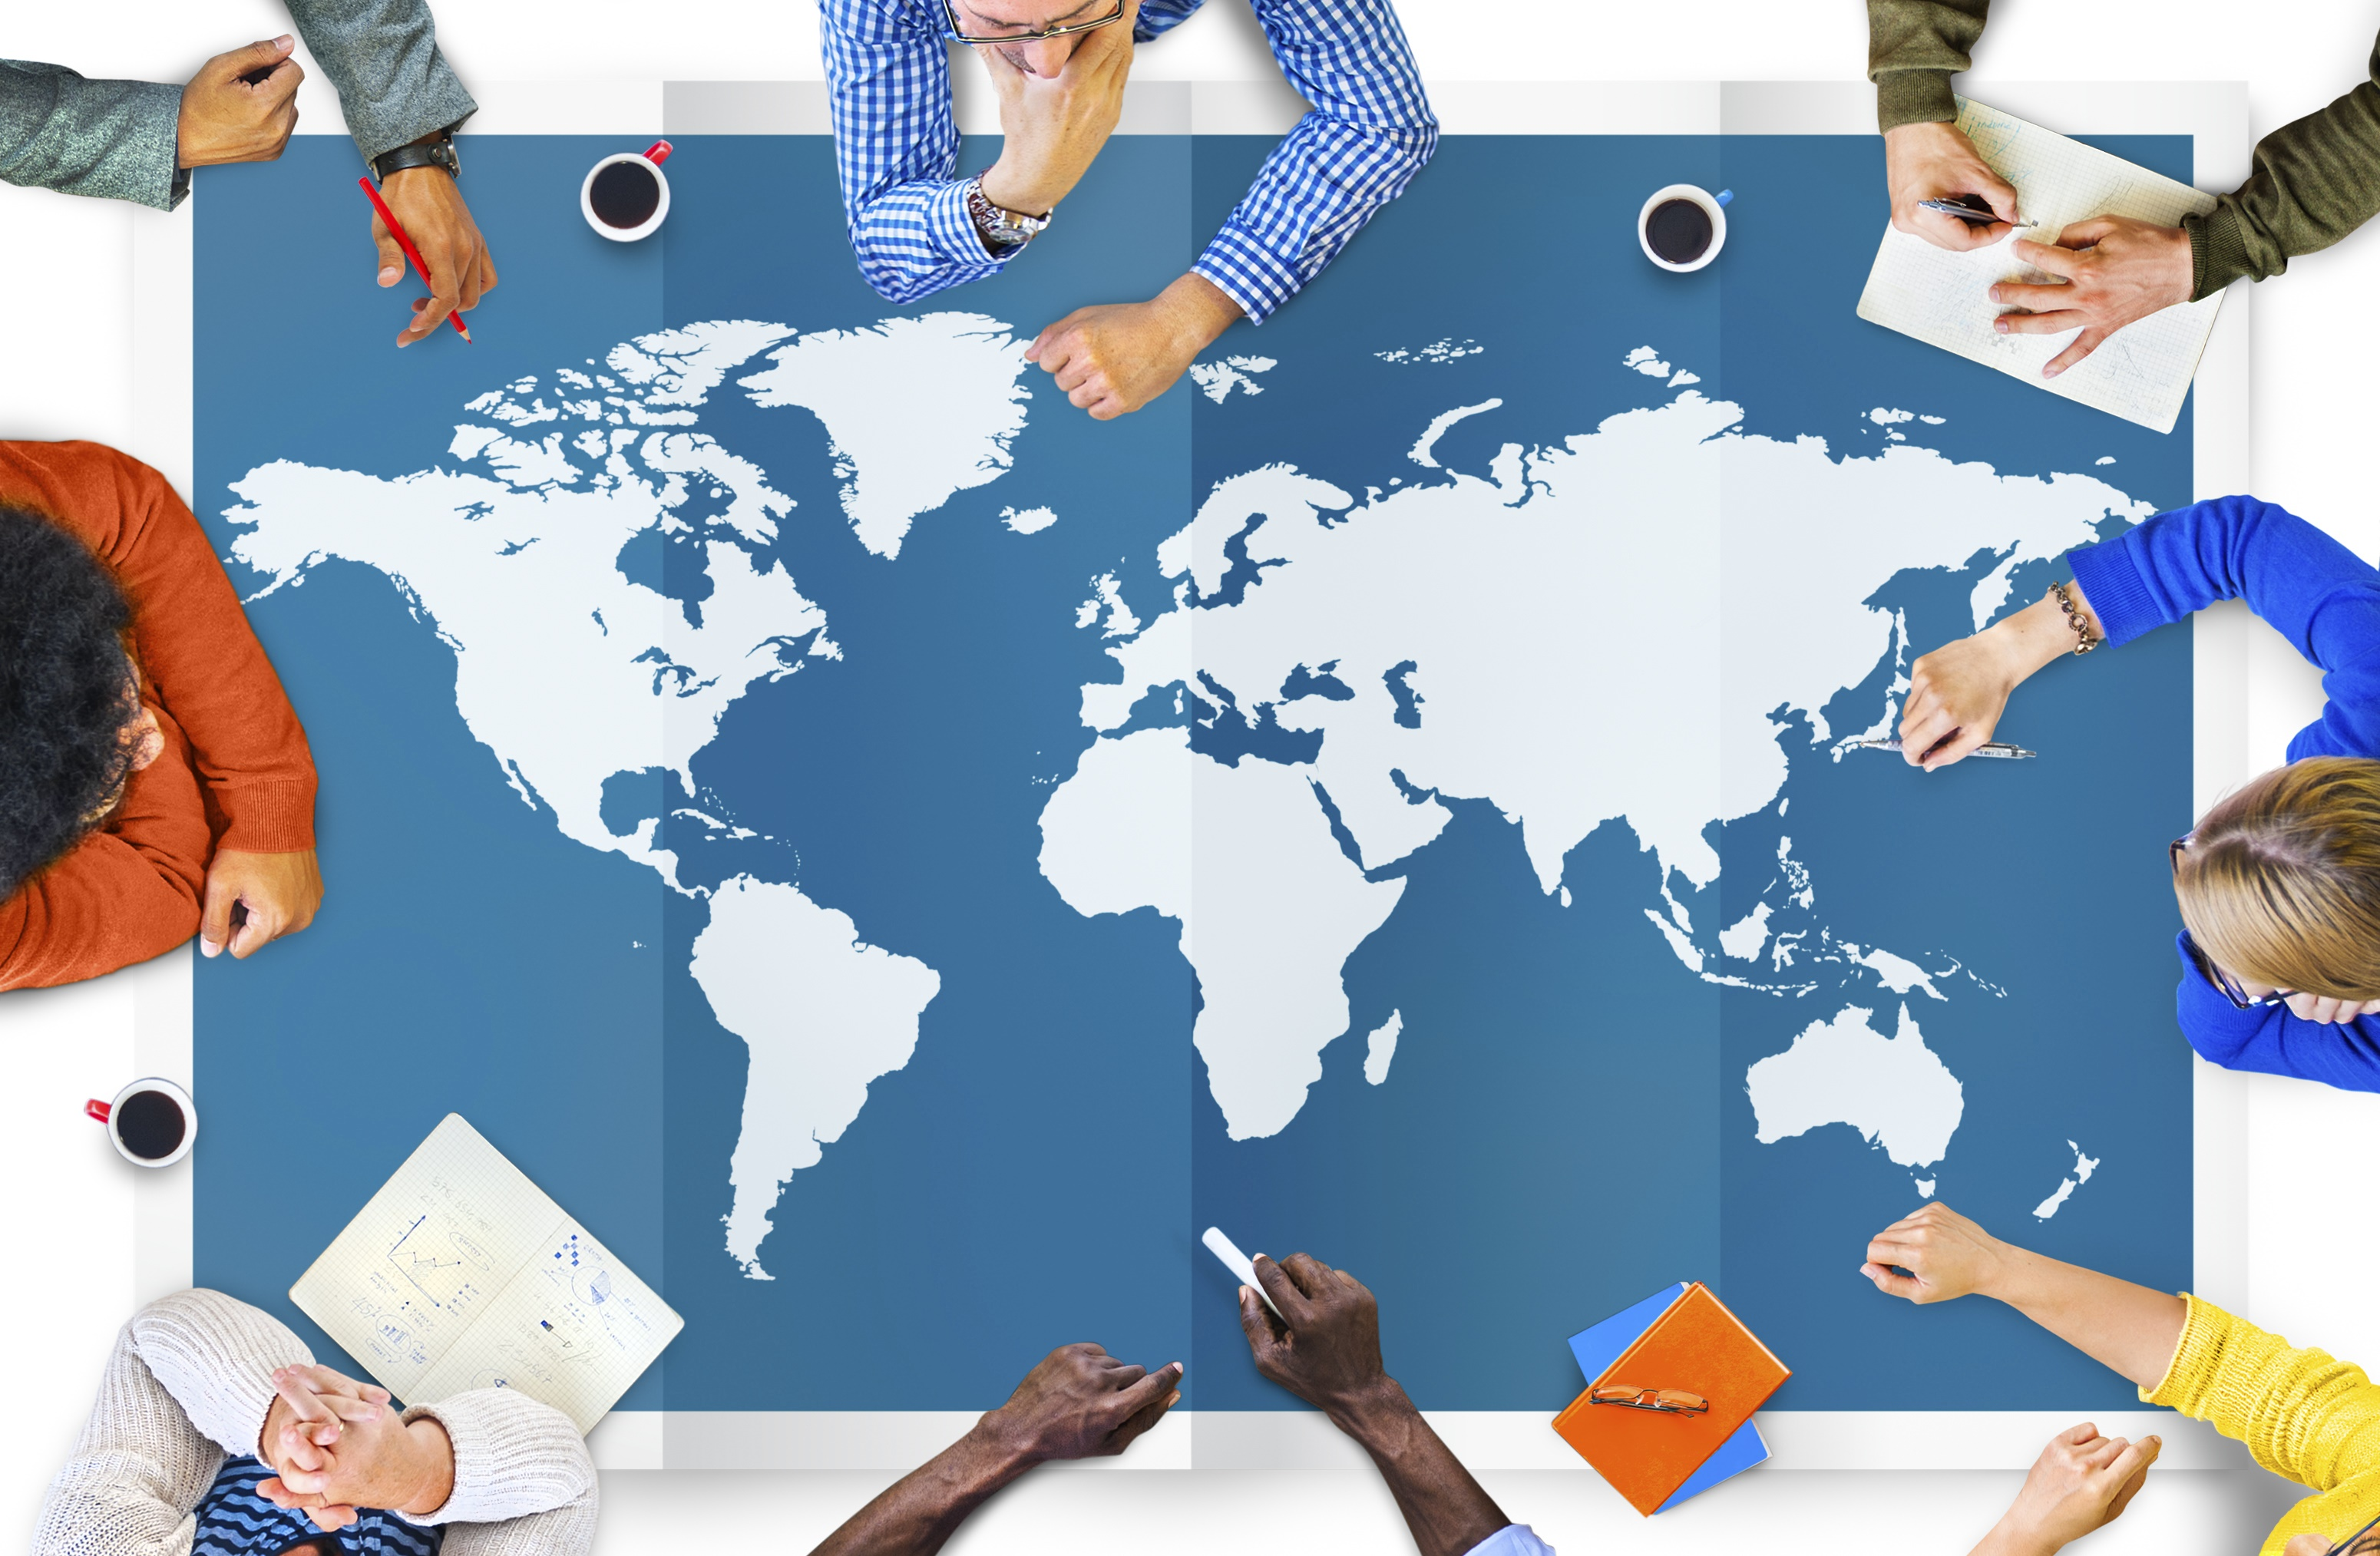 International_Business_People_Around_a_Map